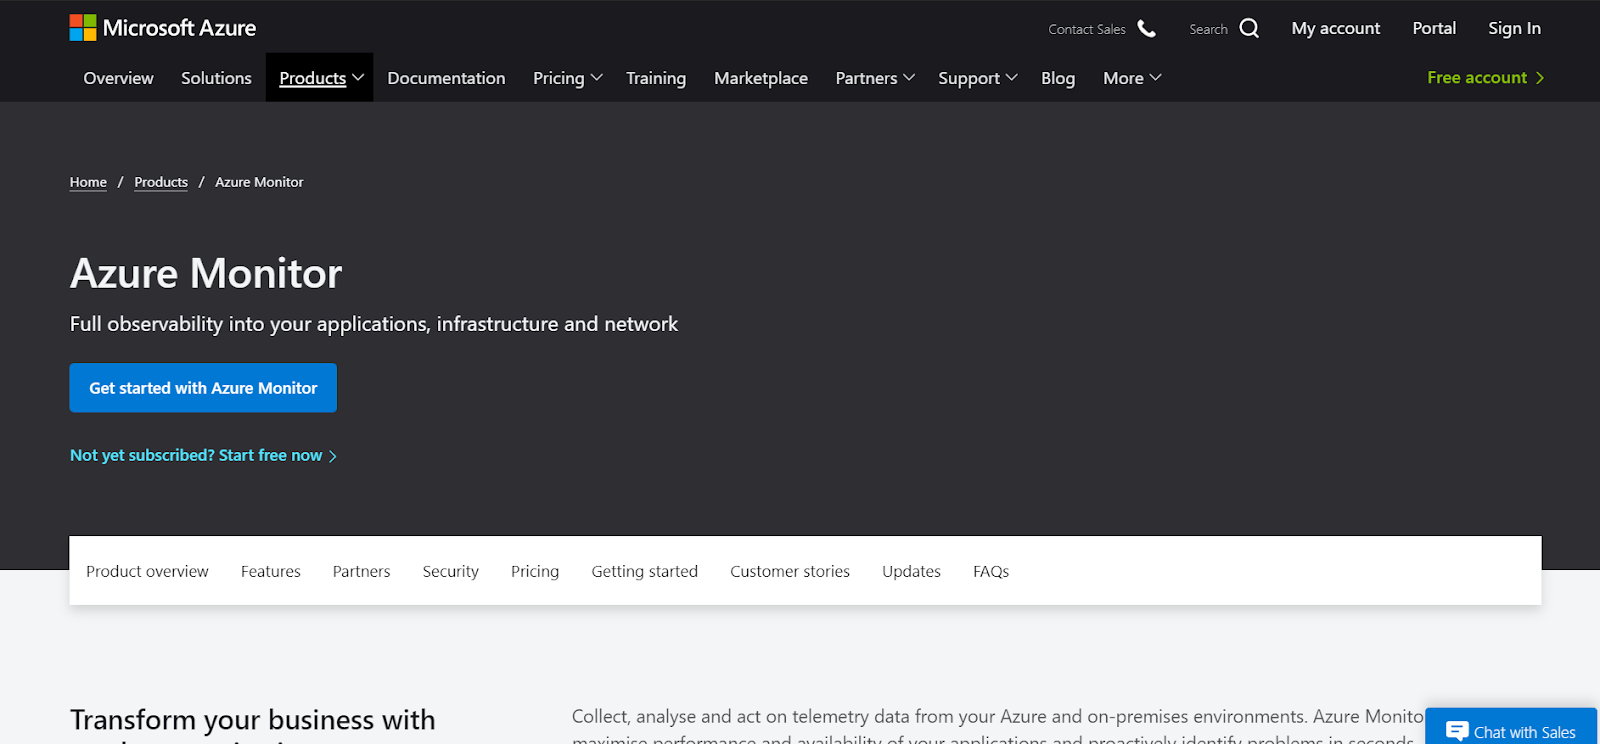 Azure Monitor is one of the best Application Performance Monitoring Tools in the market